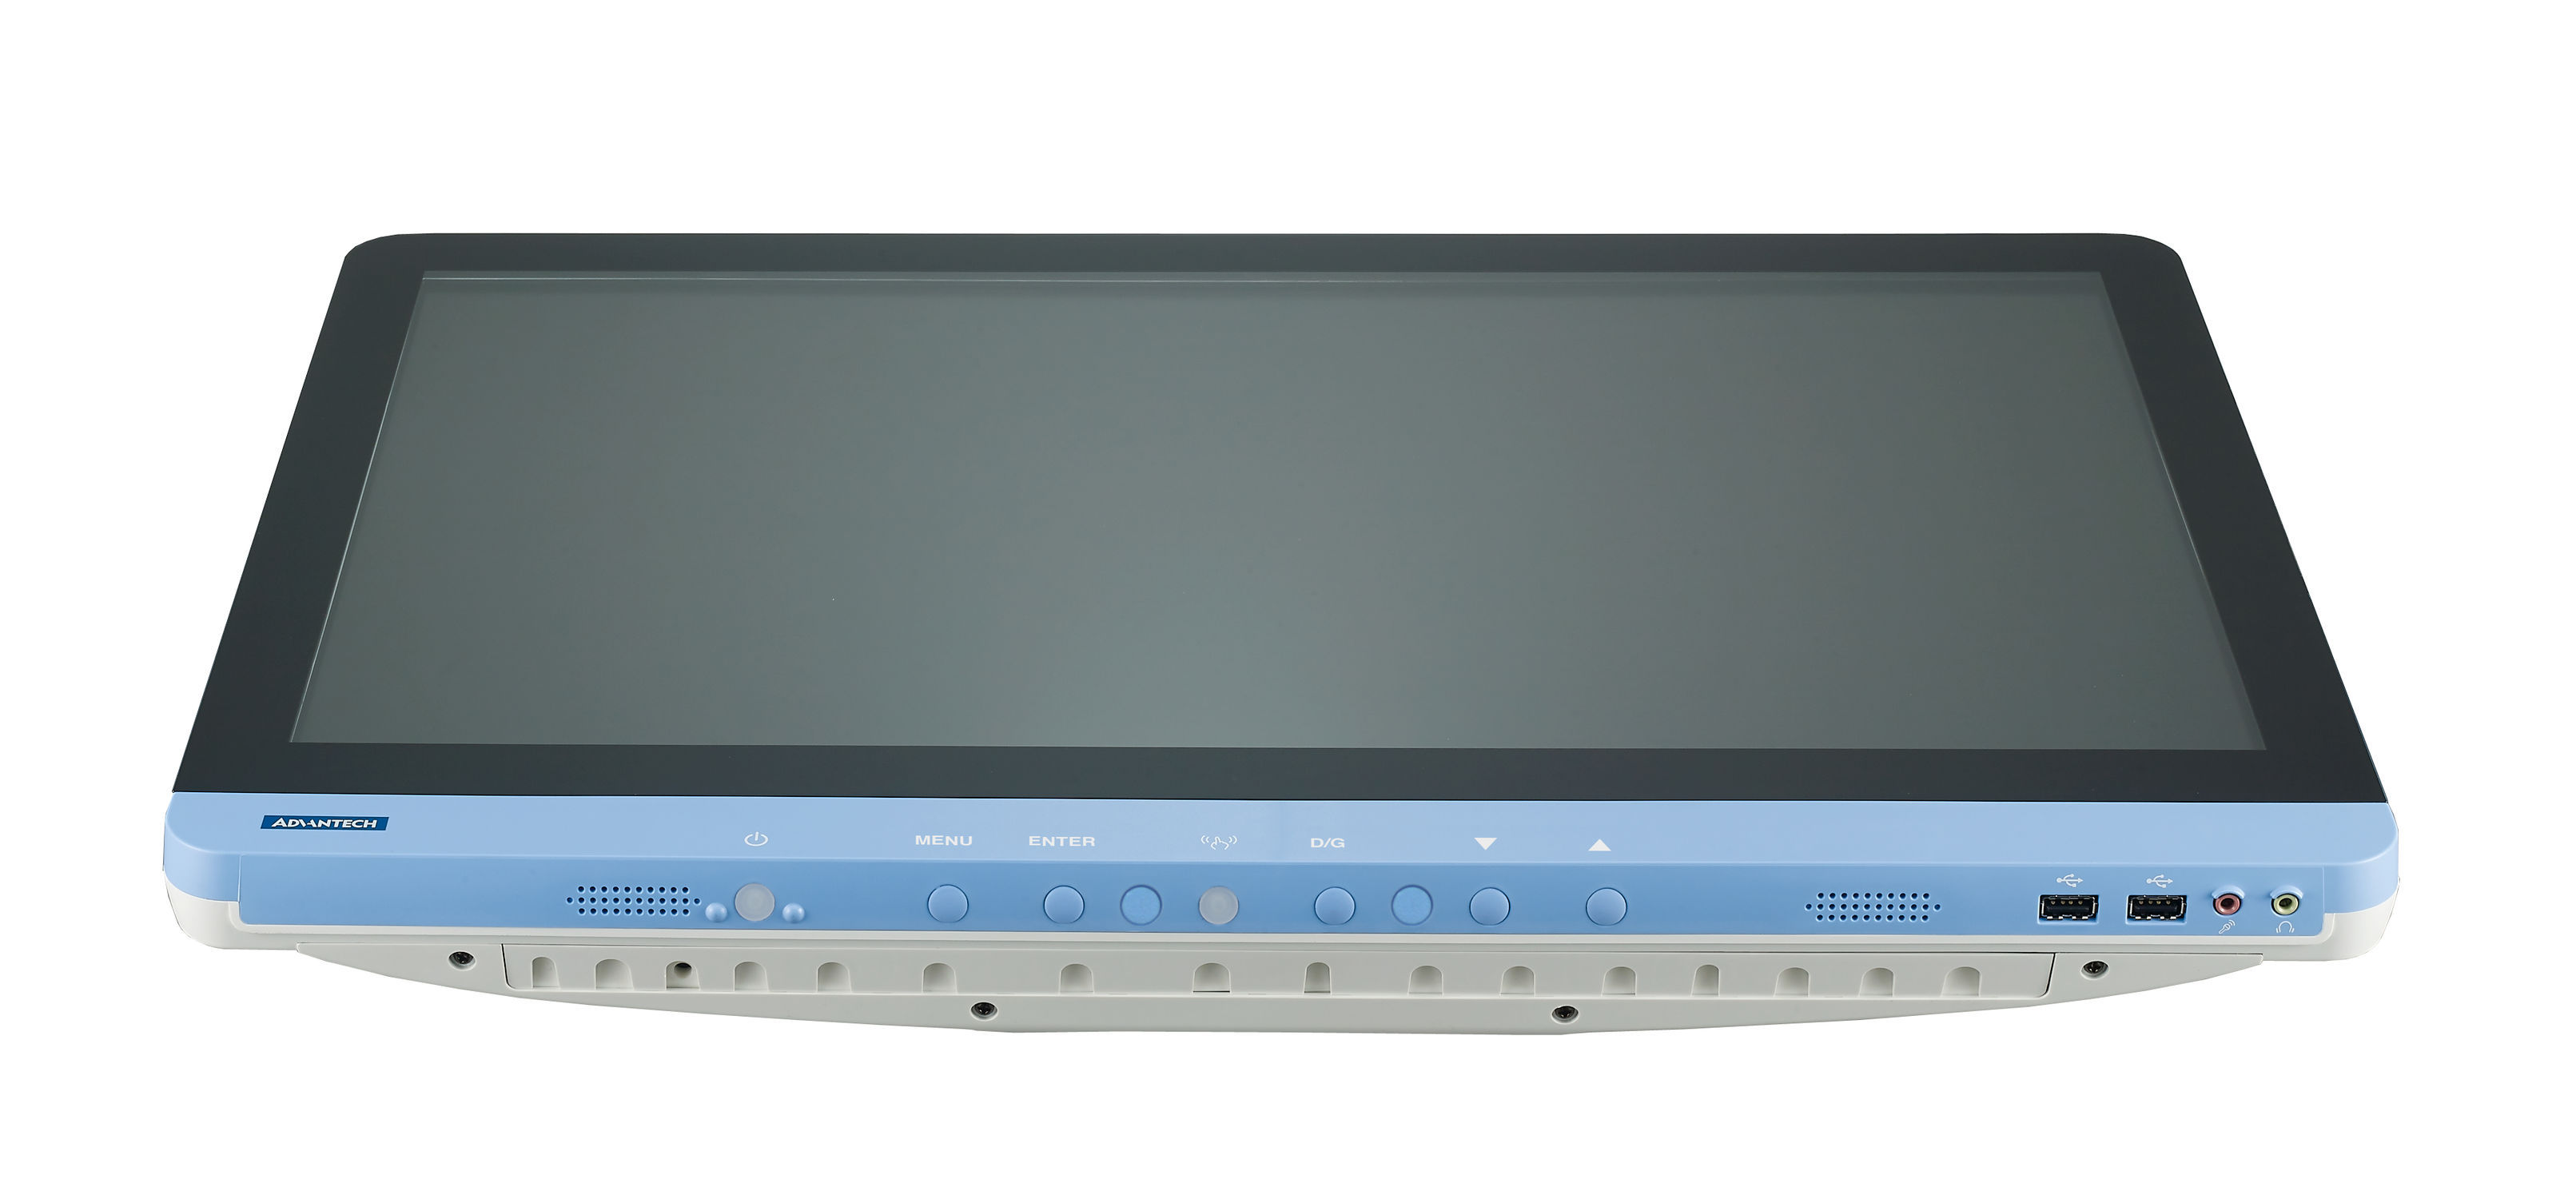 Operating Room Display Full Hd Lcd Touch Screen Pdc W240 Technology Working